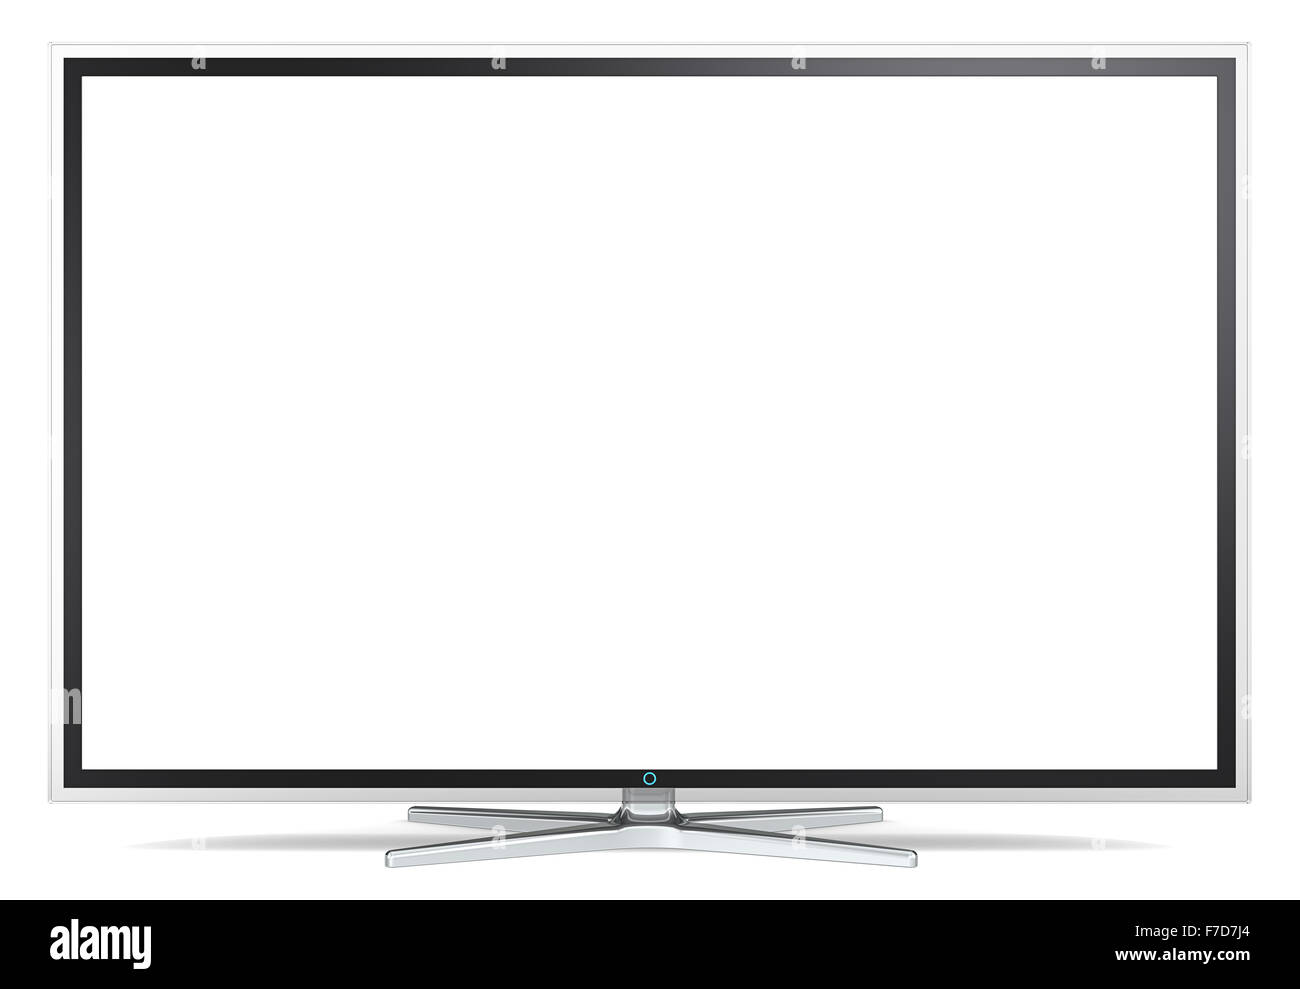 Non branded Widescreen TV on metal stand. Black and Glass frame. Blank for copy space. - Stock Image